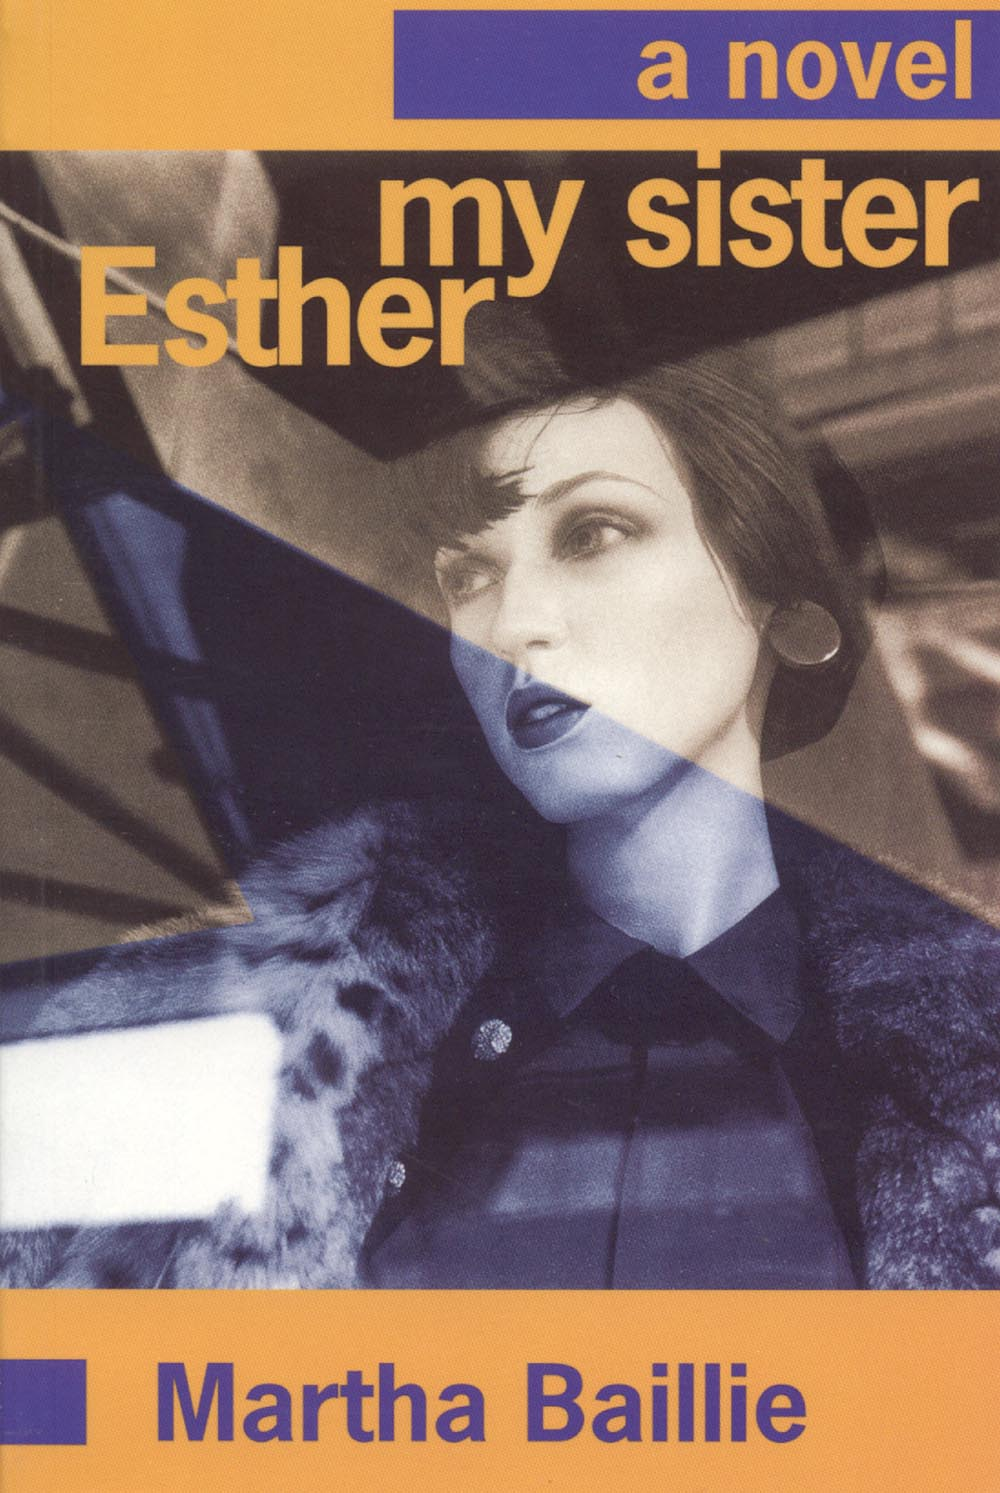 My Sister, Esther by Martha Baillie